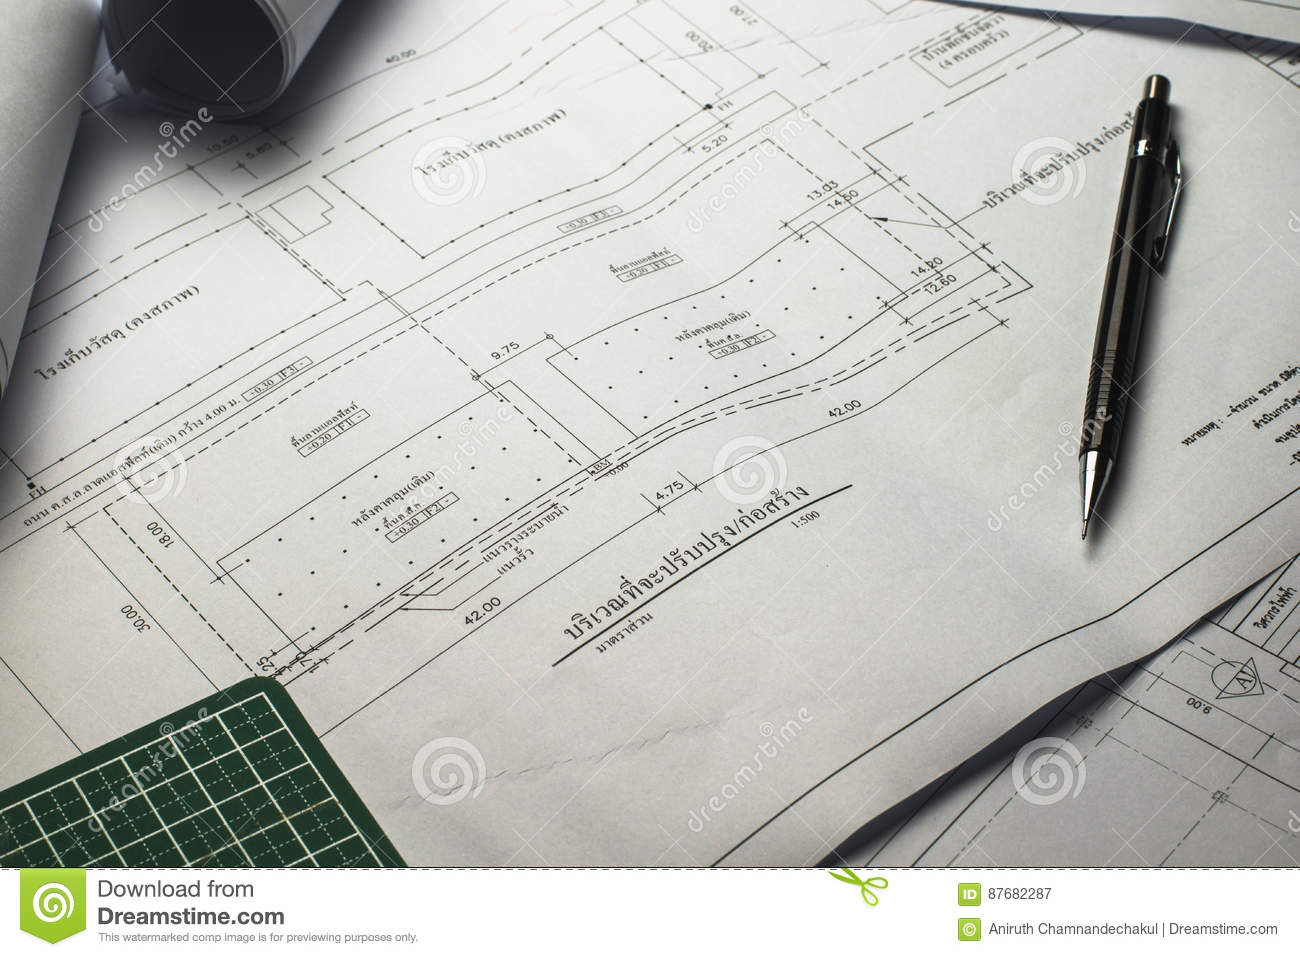 Engineering diagram blueprint paper drafting project sketch arch download comp malvernweather Image collections